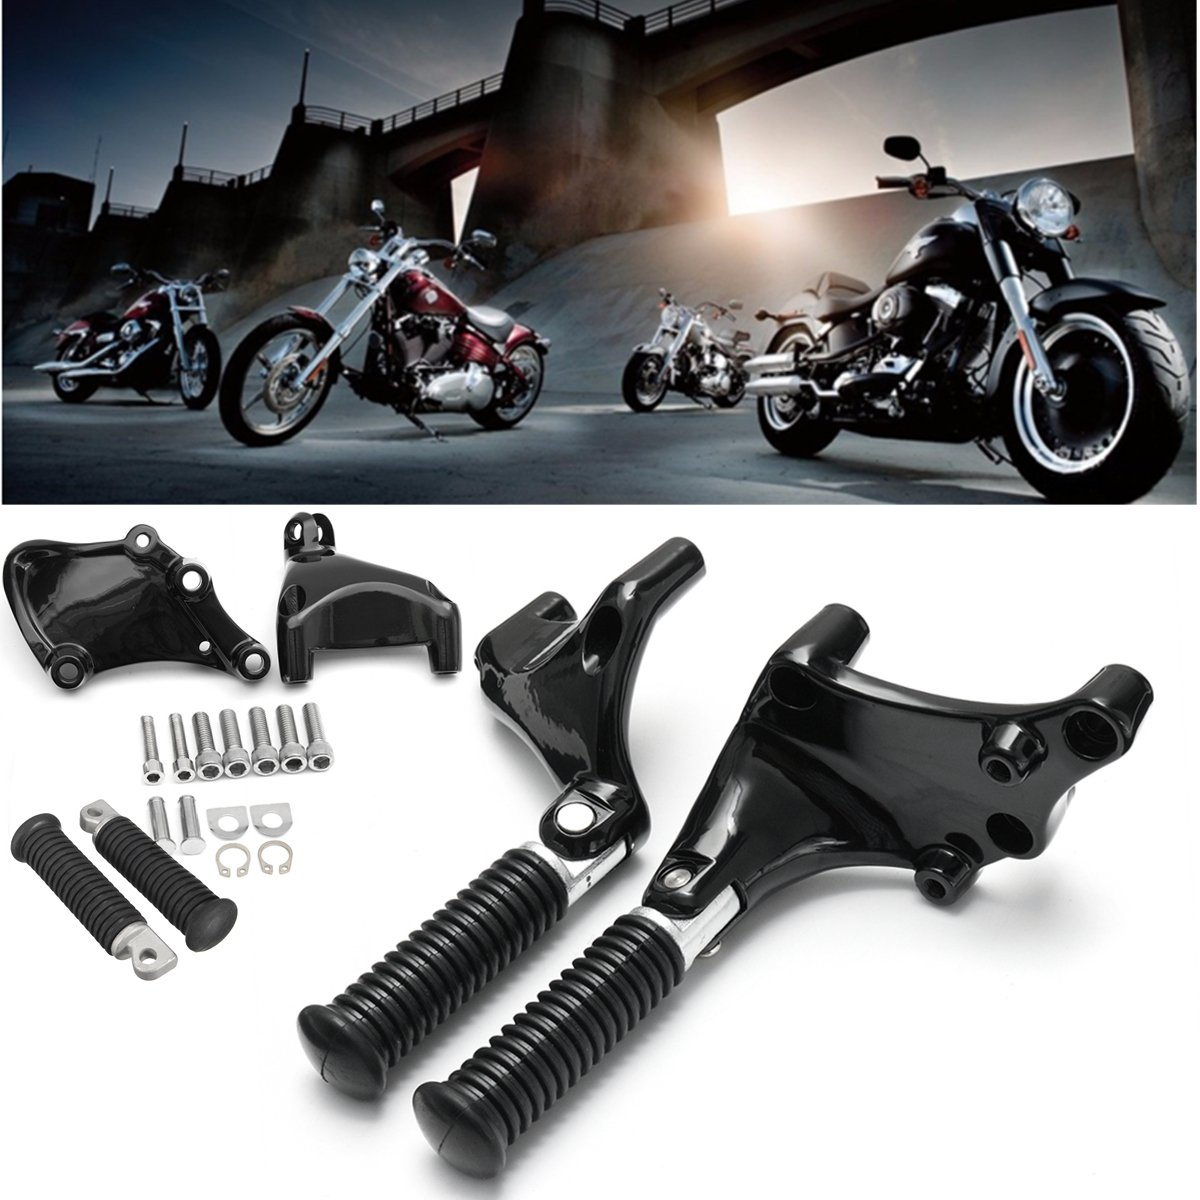 New Pair Black Rear Passenger Foot Pedal Mount Bracket + Foot Pegs Footpegs For Davidson Sportster 883 2014 2015 2016